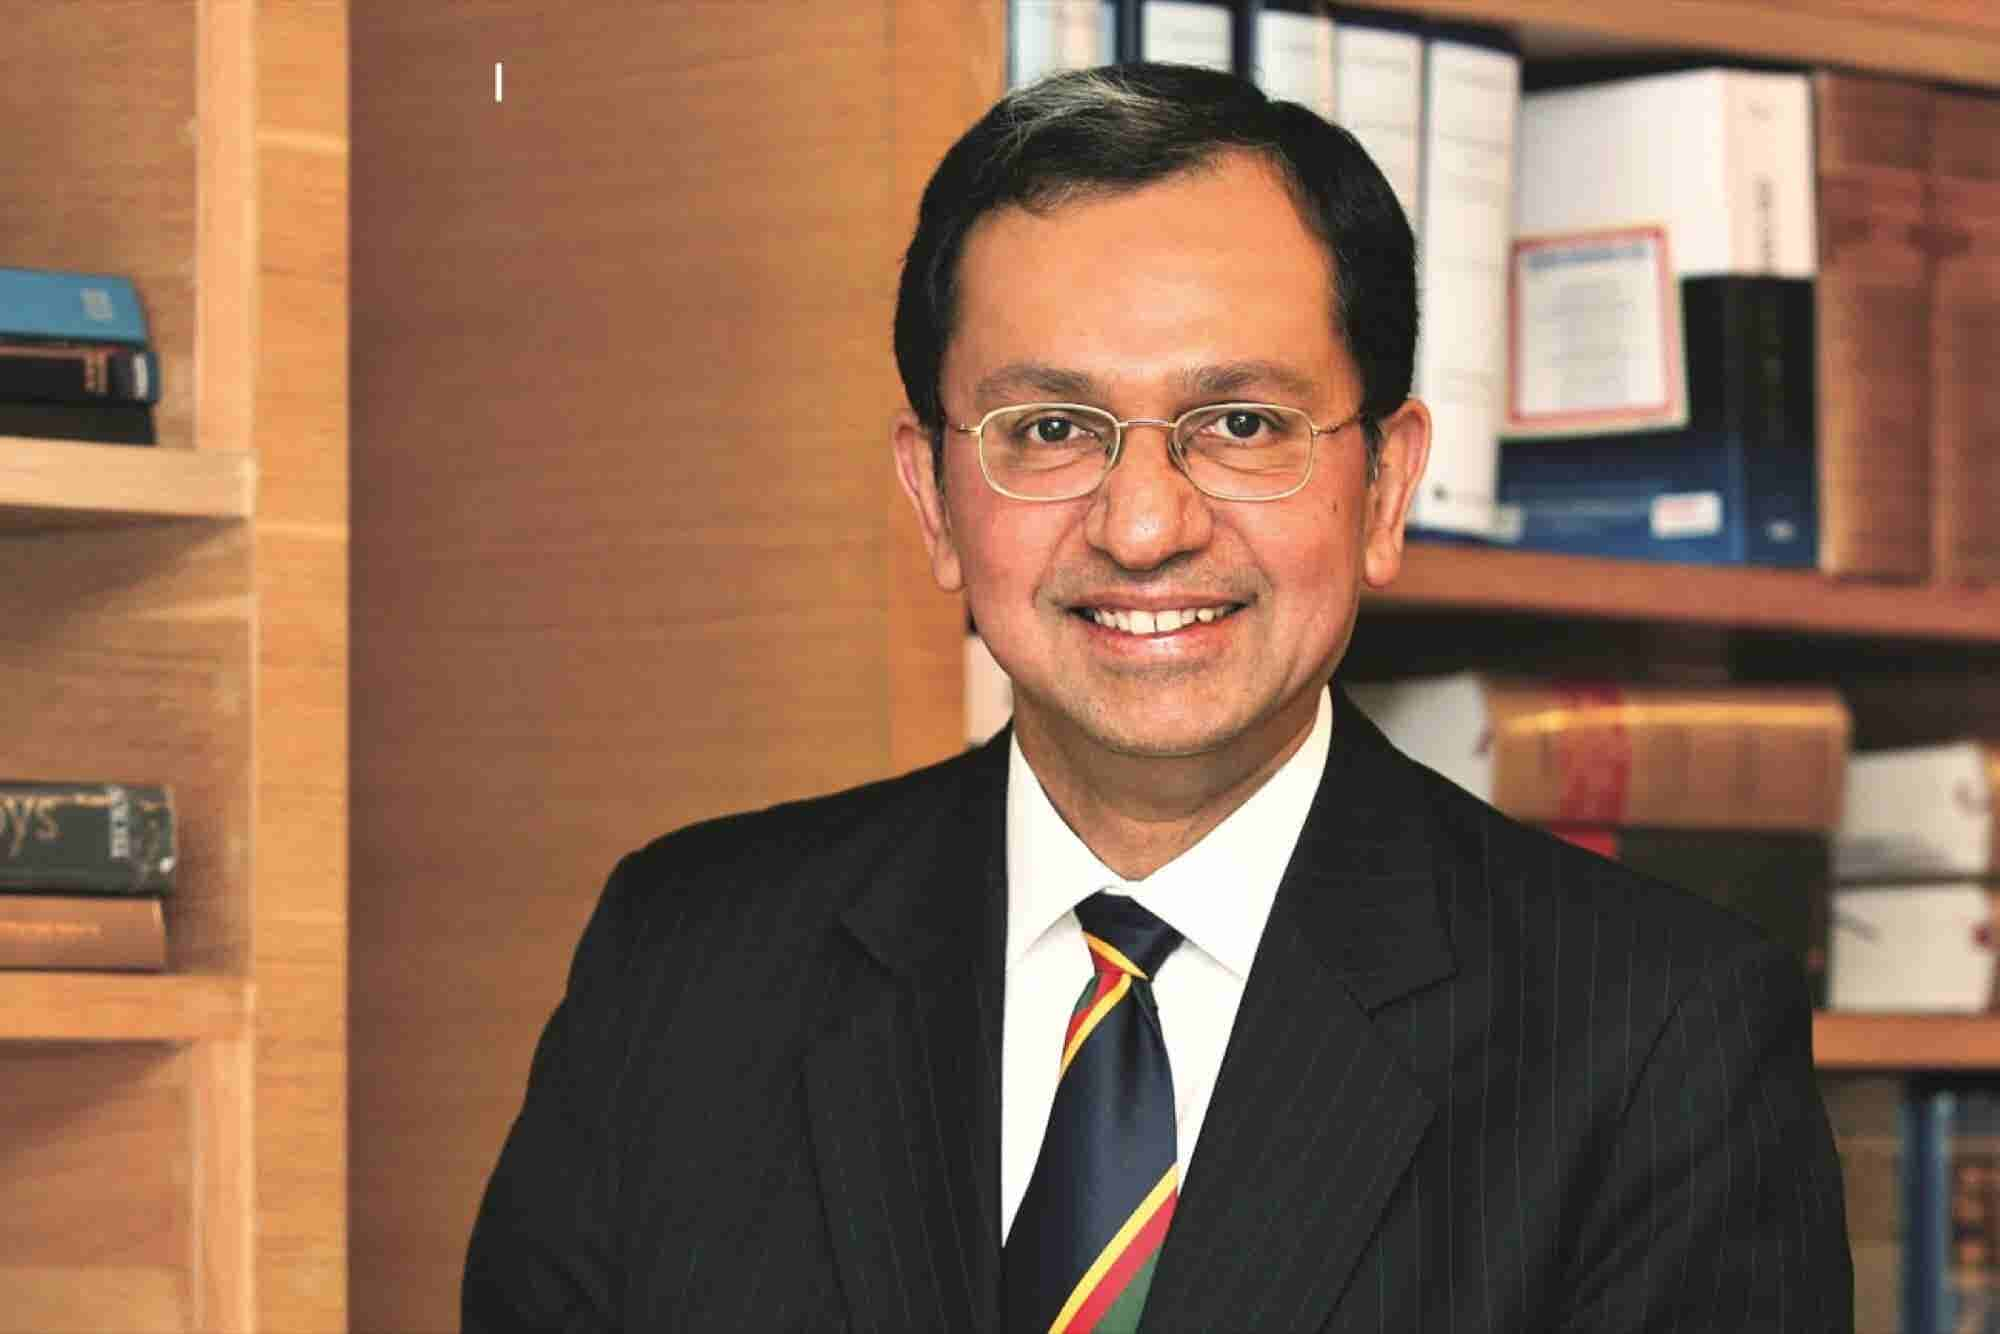 The CEO Who Managed One of the Biggest FMCG Crises in Decades